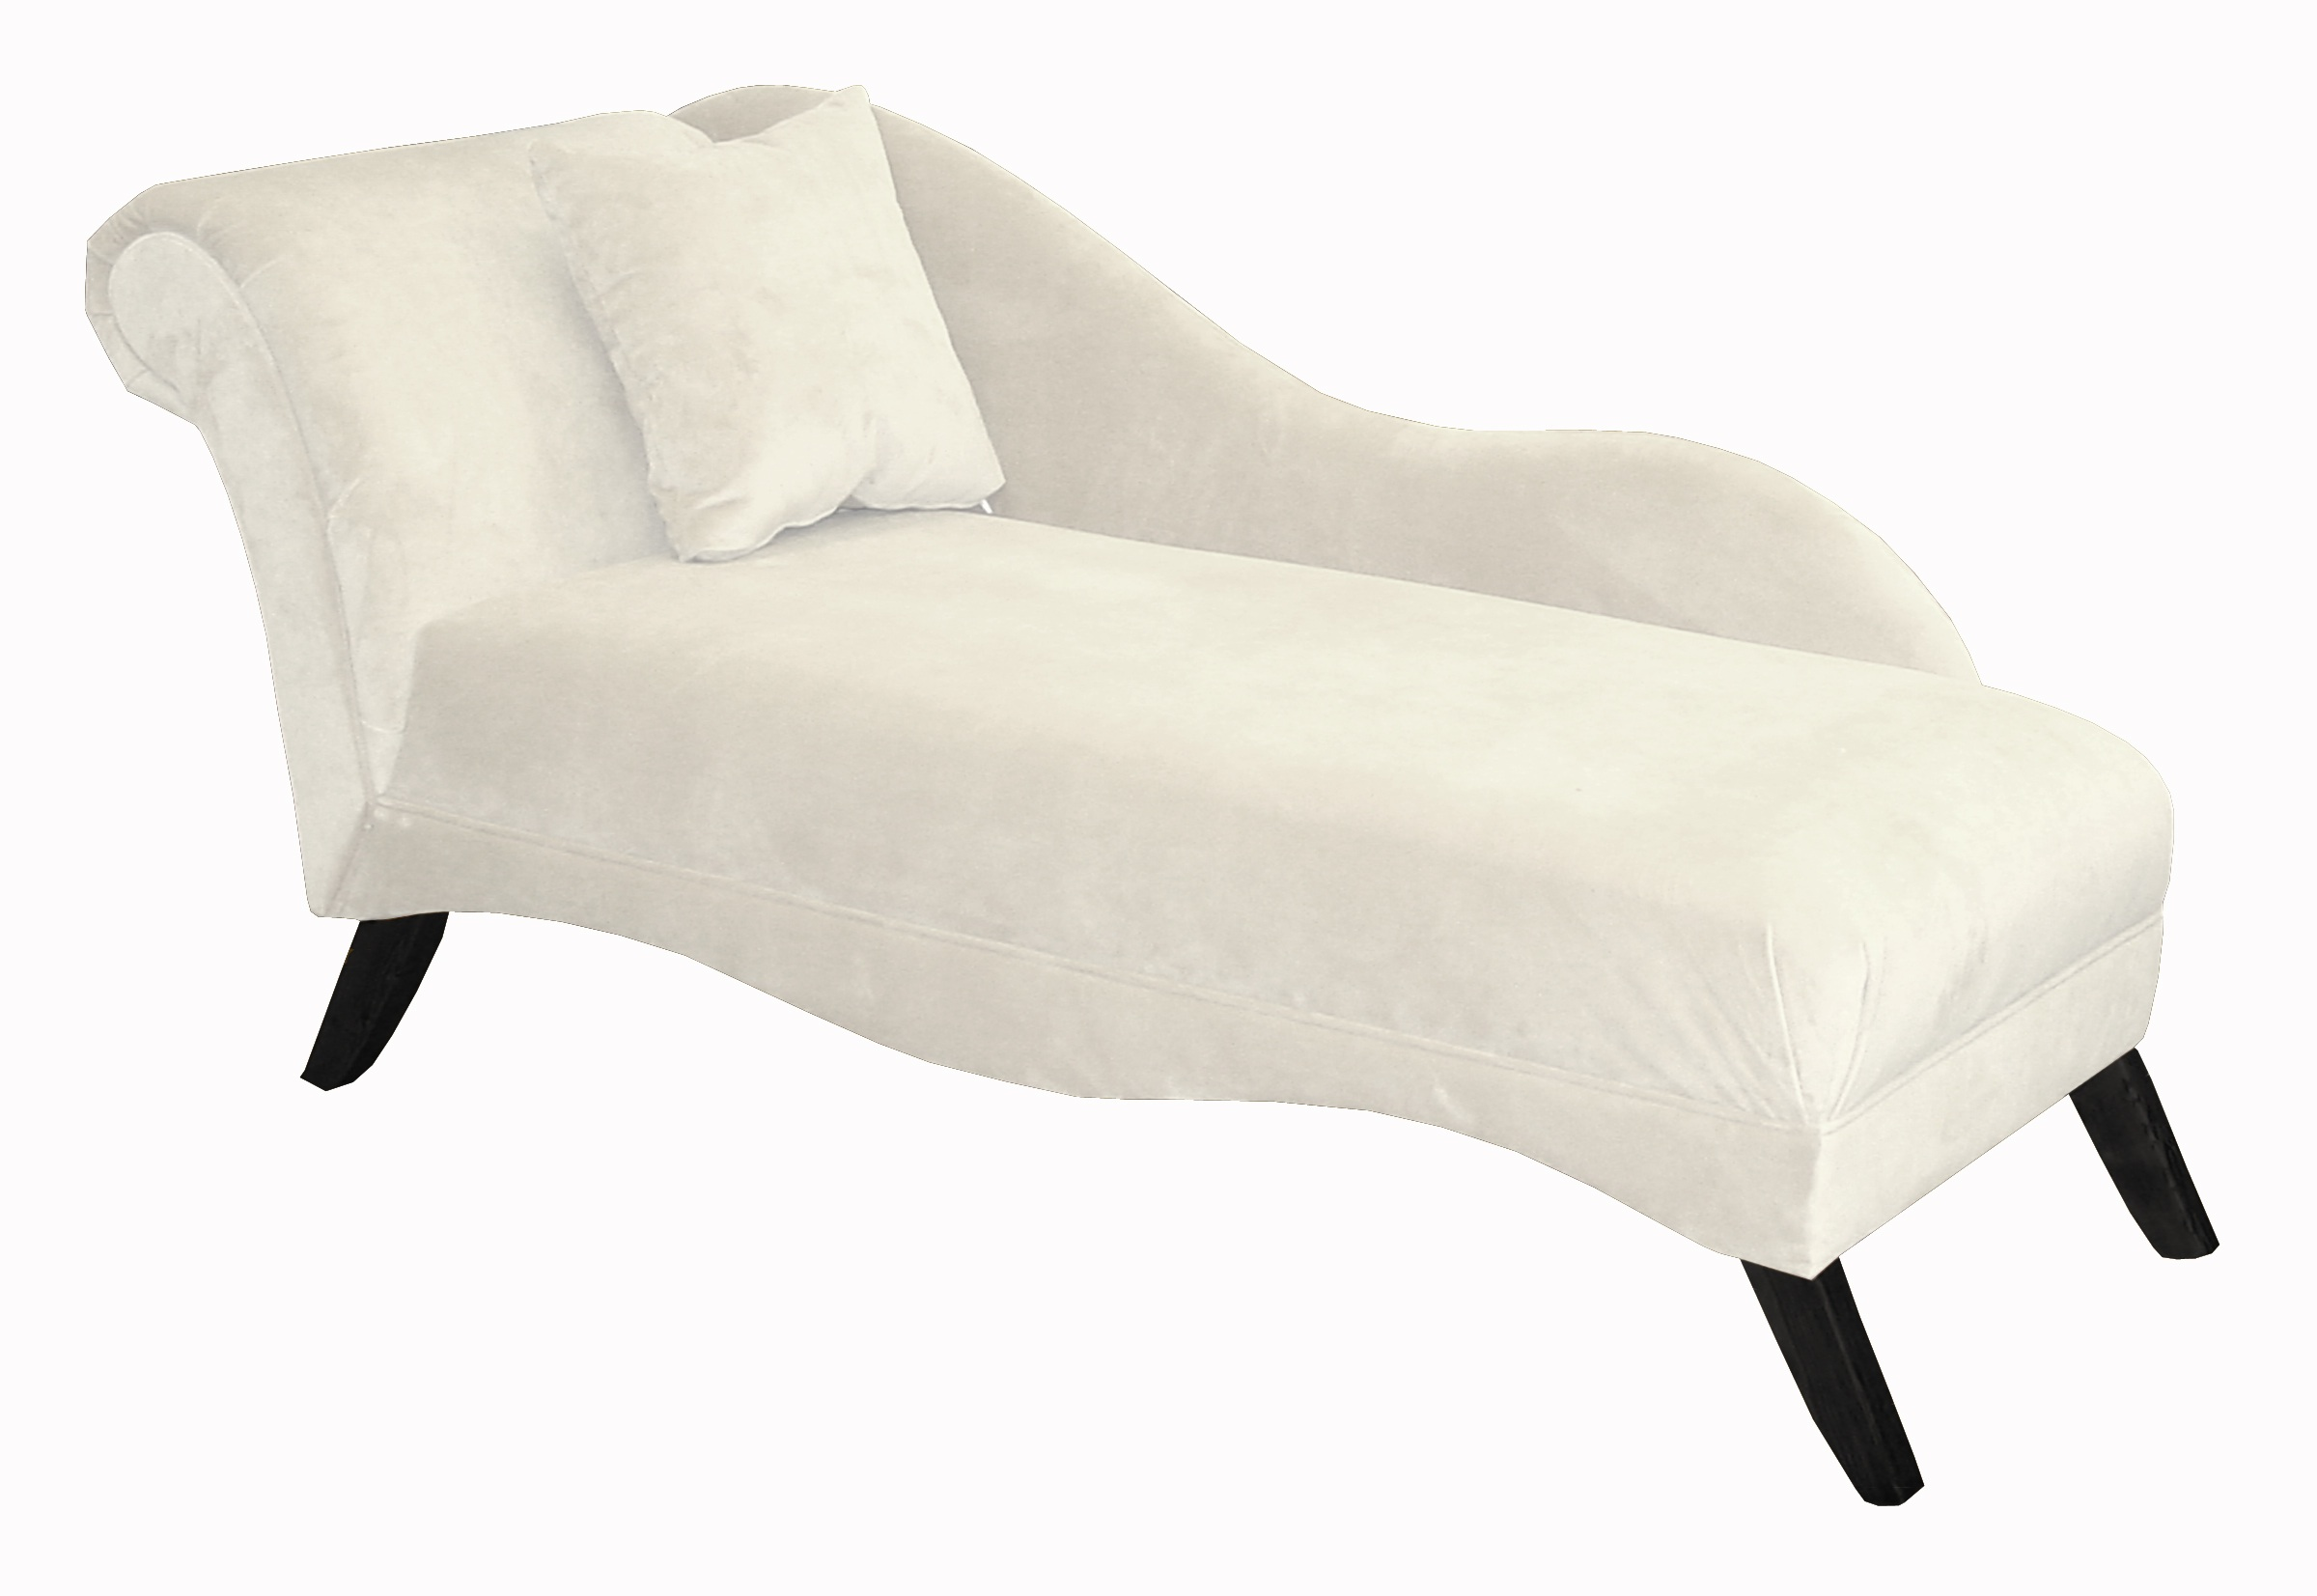 white chaise lounge chair images. Black Bedroom Furniture Sets. Home Design Ideas